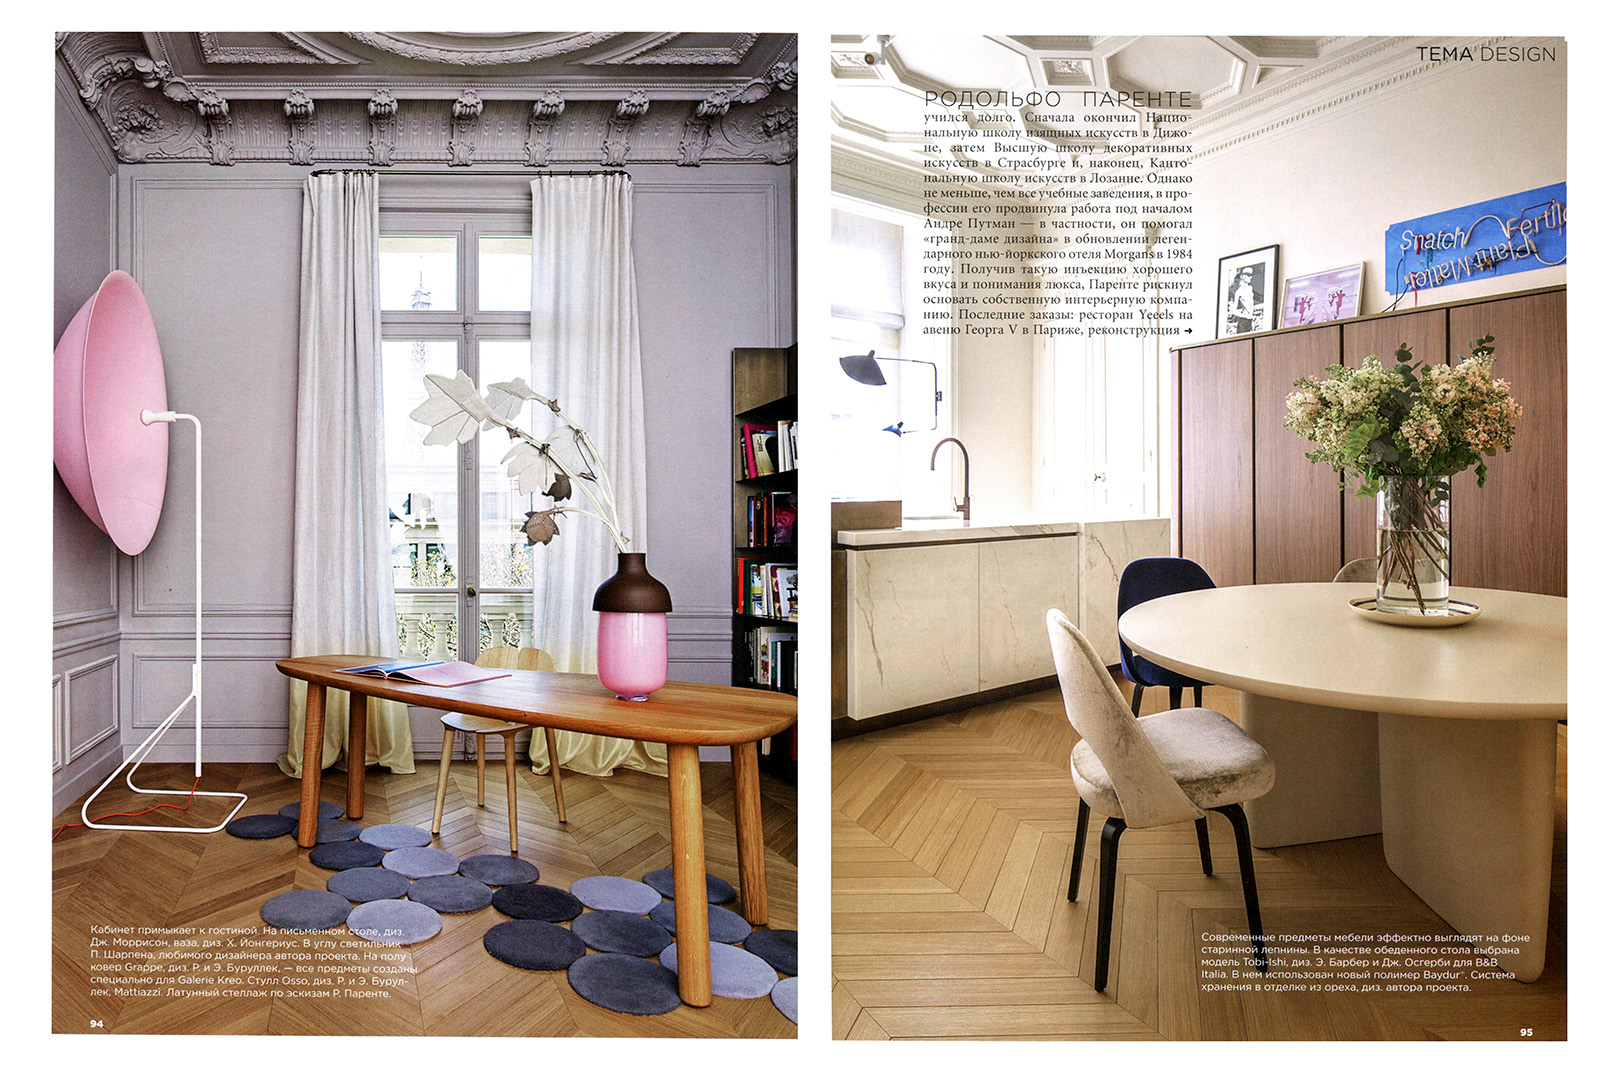 Rodolphe-Parente-Interior-Design-Magazine-2015-03